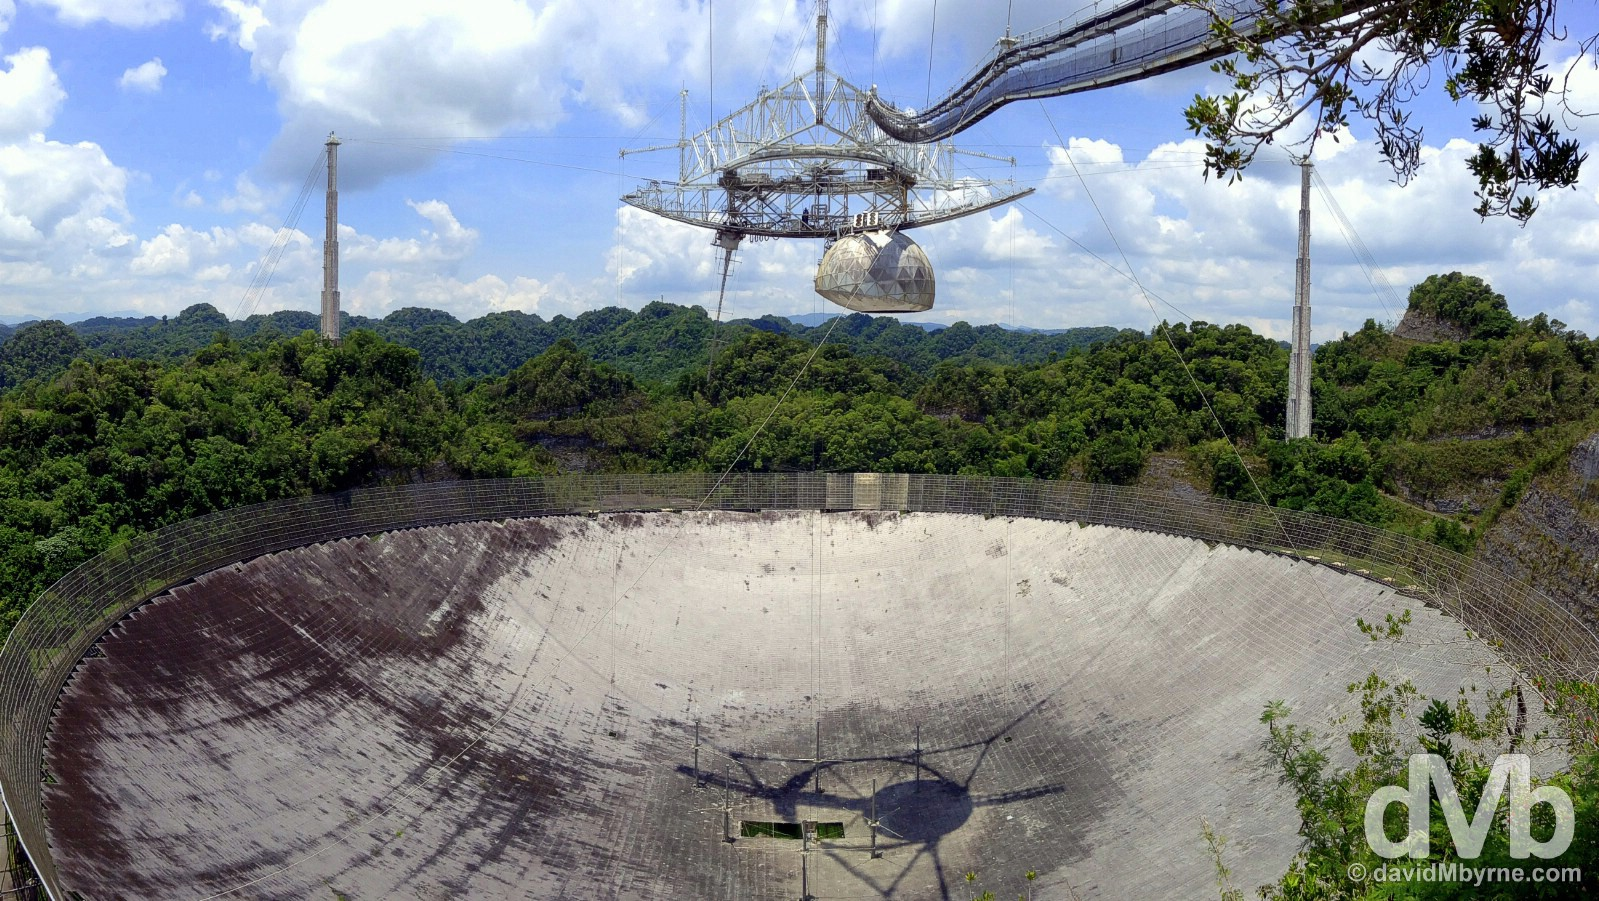 Arecibo Observatory, Puerto Rico, Greater Antilles. June 4, 2015.